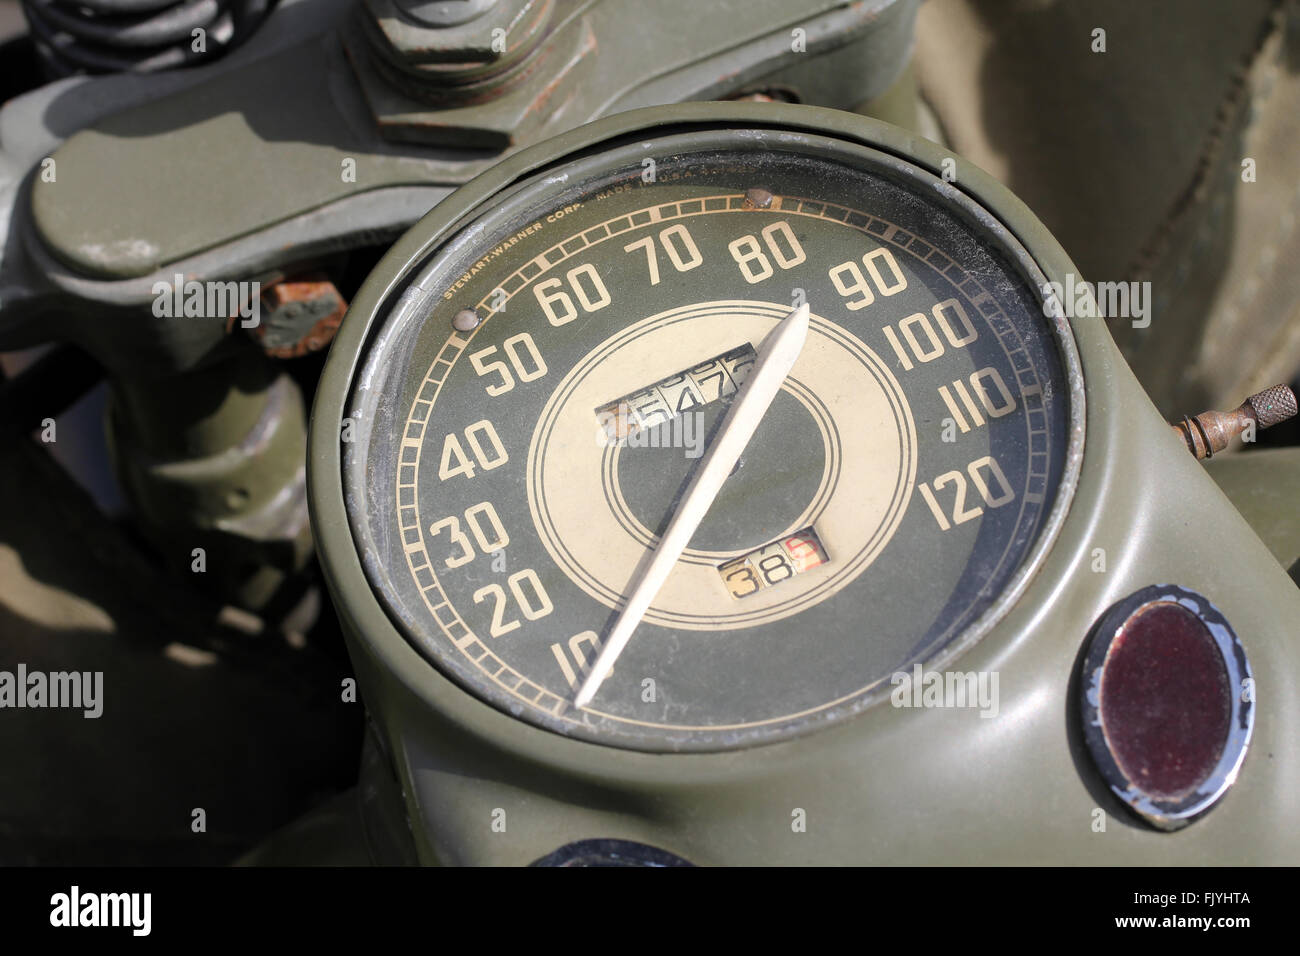 Old Army motorcycle meter - Stock Image